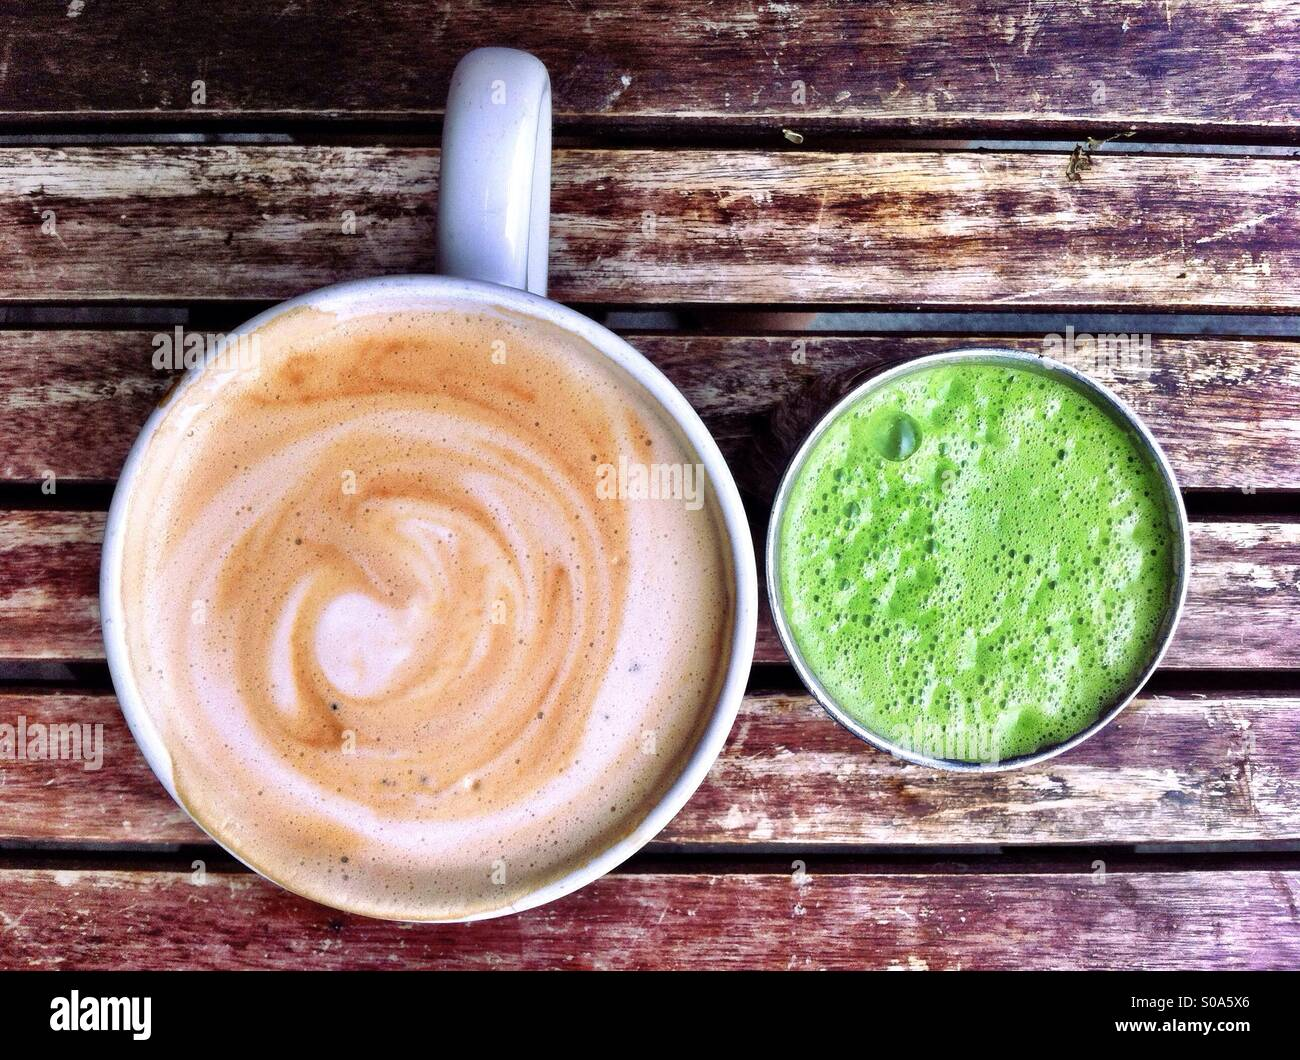 Cup of cappuccino and glass of green juice on rustic wooden table Stock Foto